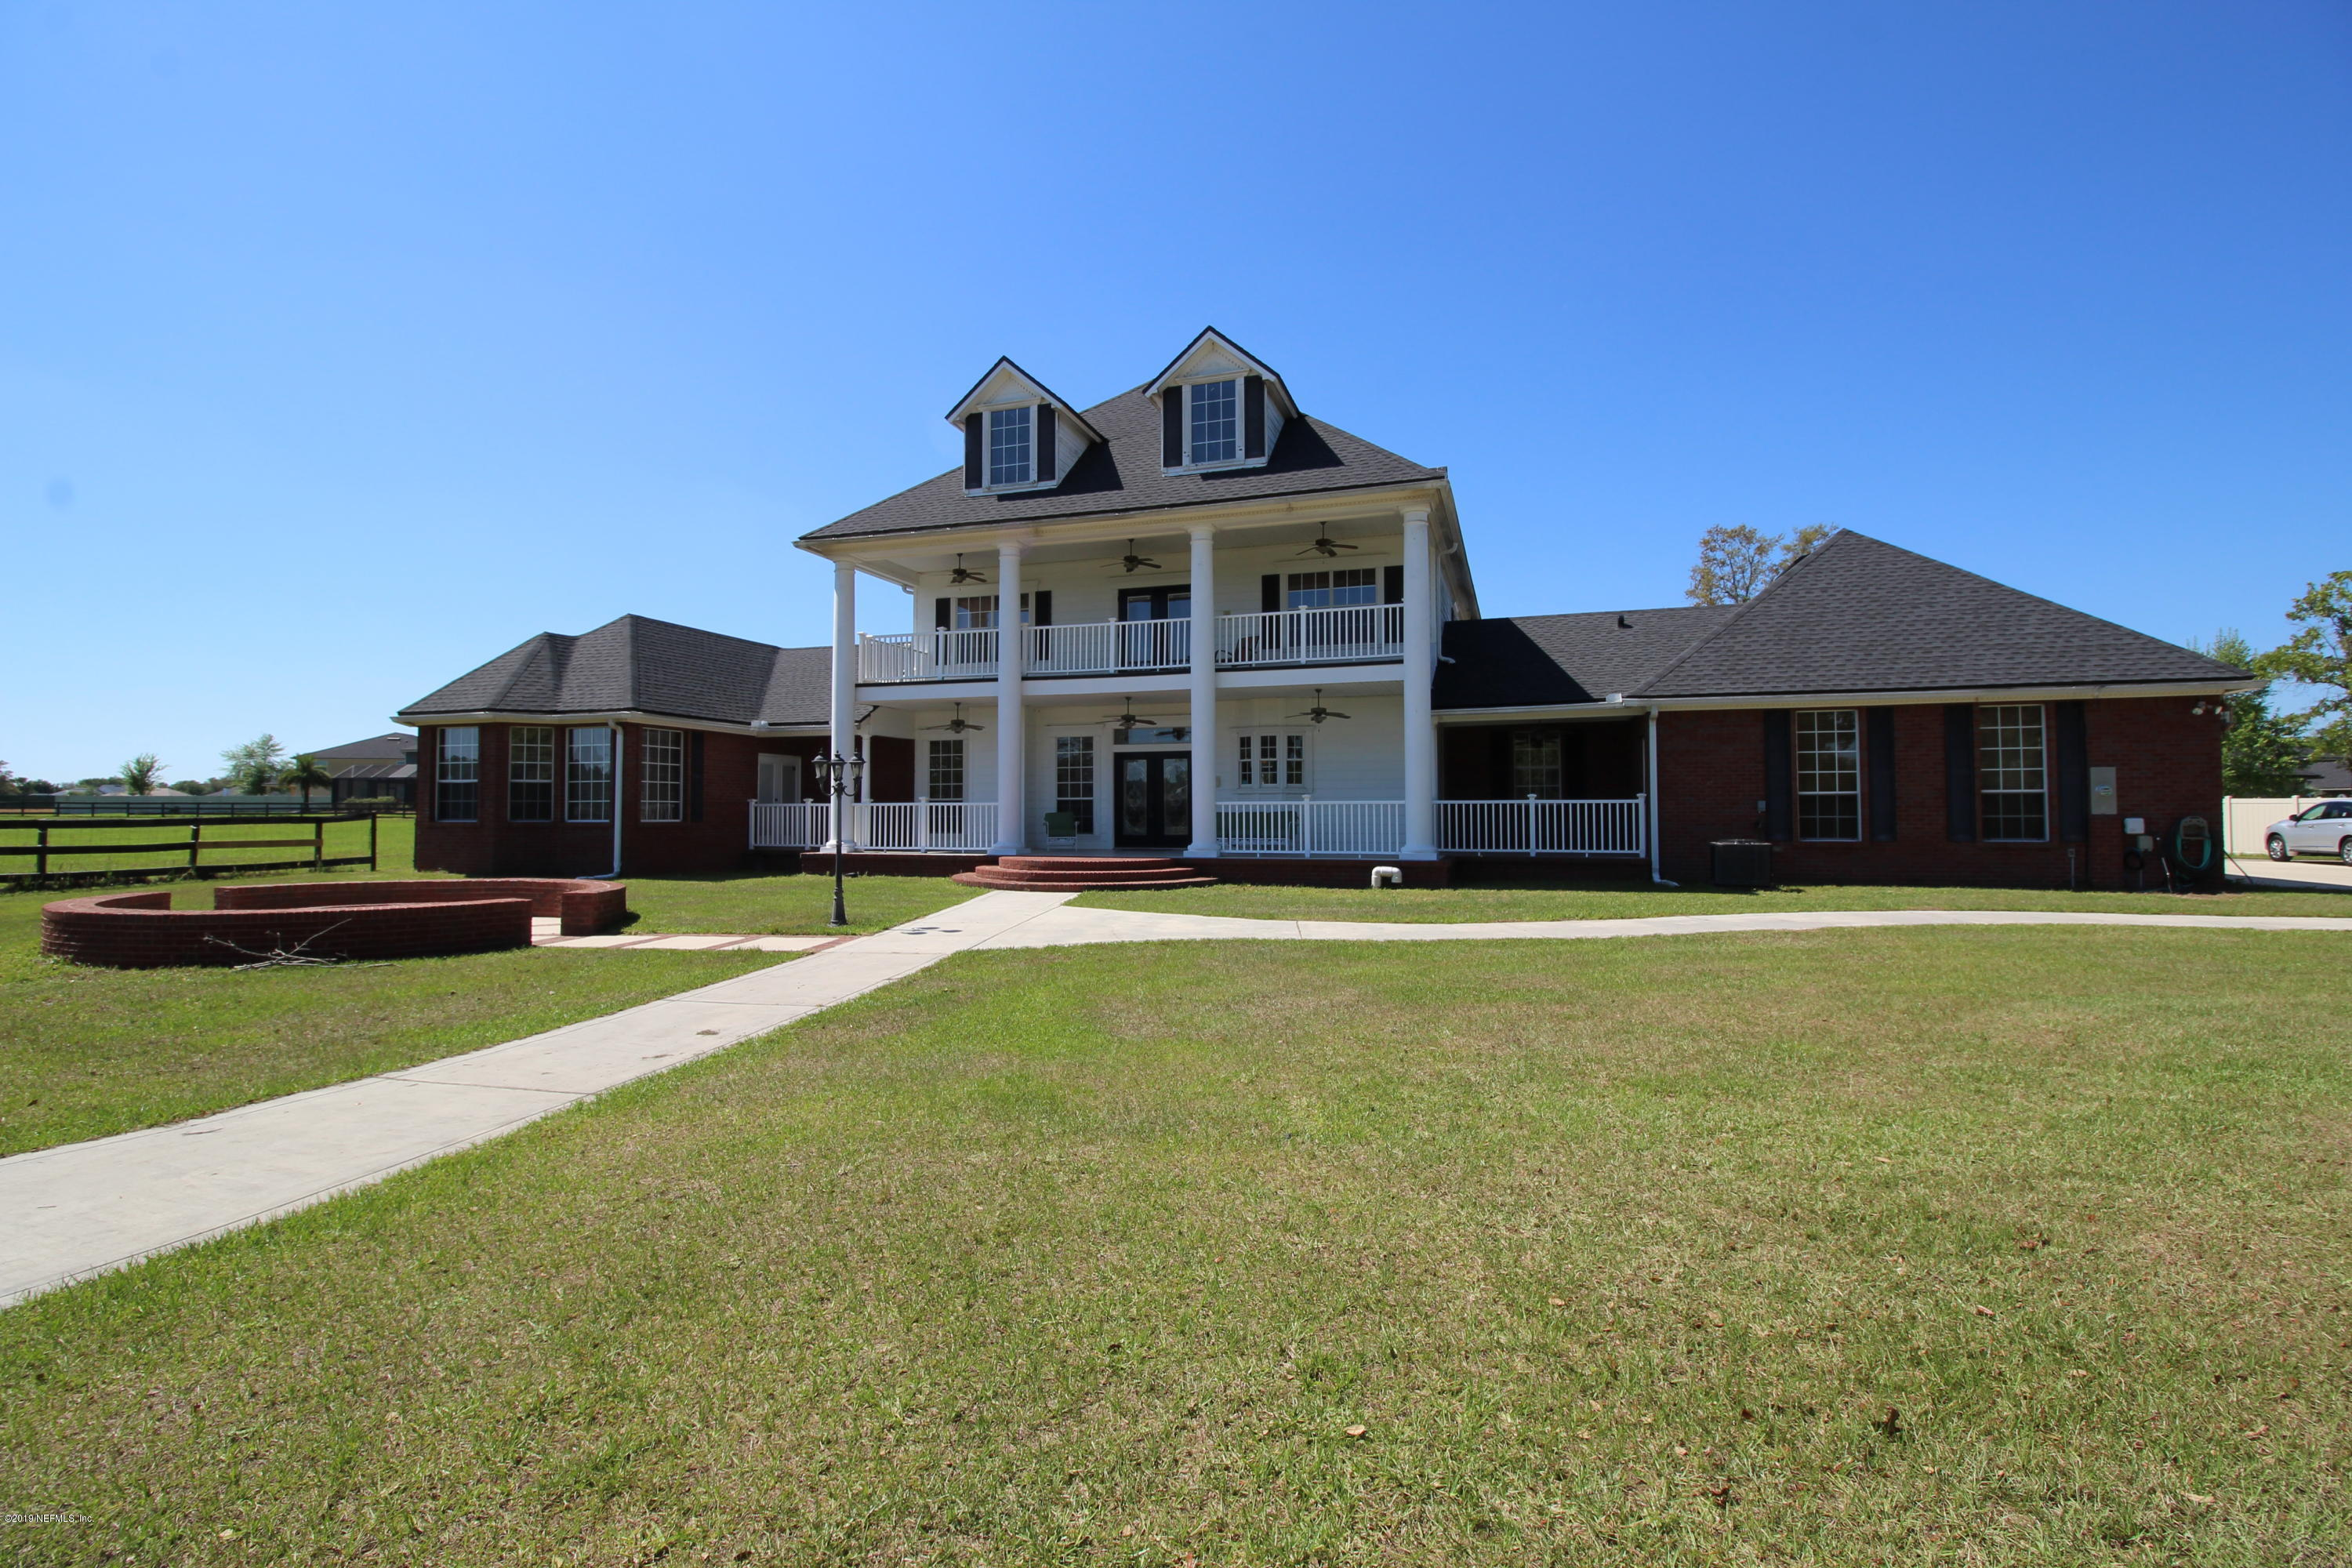 2725 HENLEY, GREEN COVE SPRINGS, FLORIDA 32043, 4 Bedrooms Bedrooms, ,3 BathroomsBathrooms,Residential - single family,For sale,HENLEY,990747